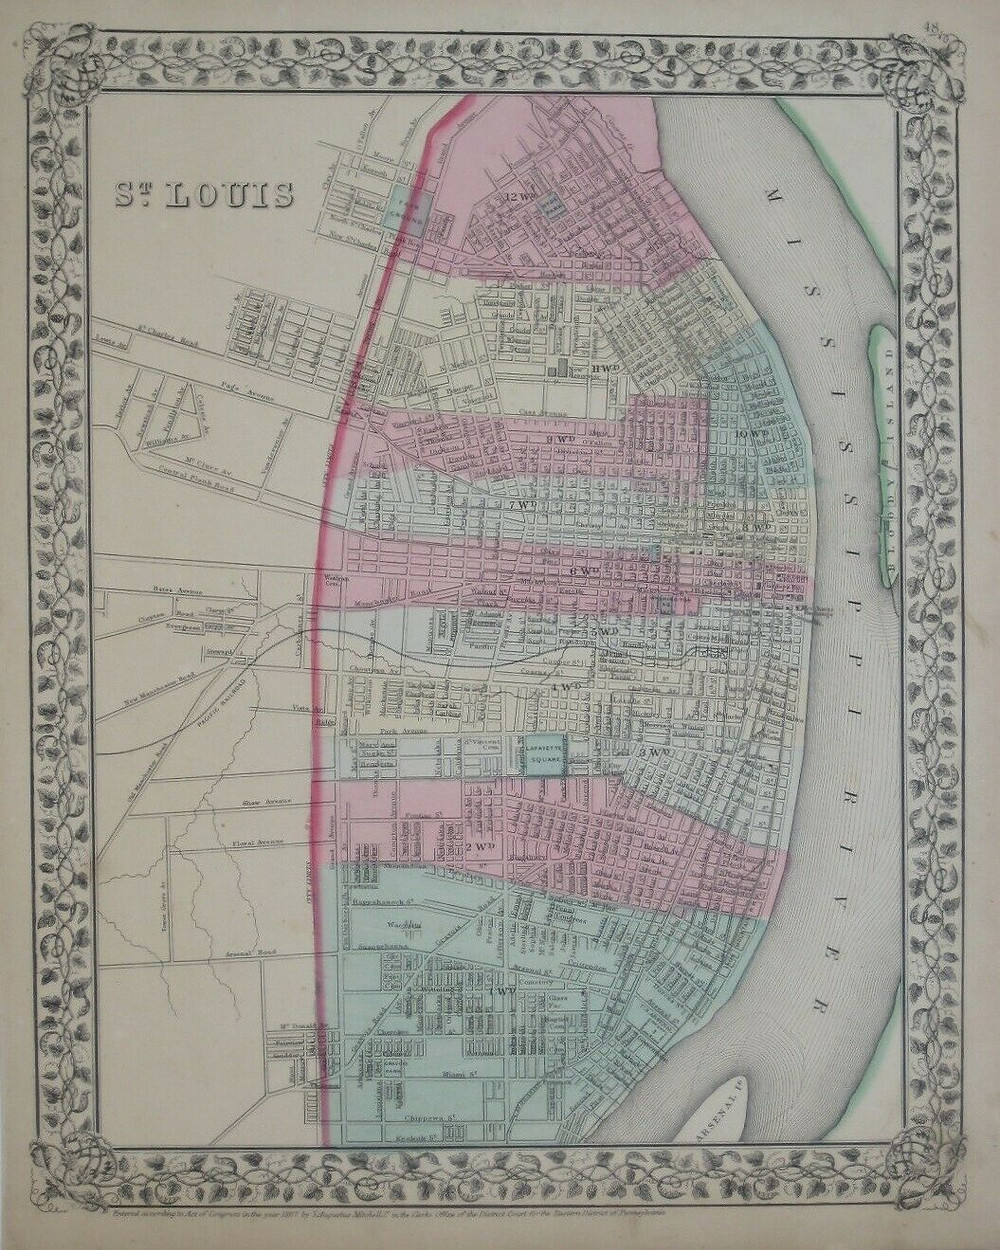 Handsome original antique lithographed 1867 street map of St. Louis, Missouri, hand-colored by ward and printed more than 150 years ago.